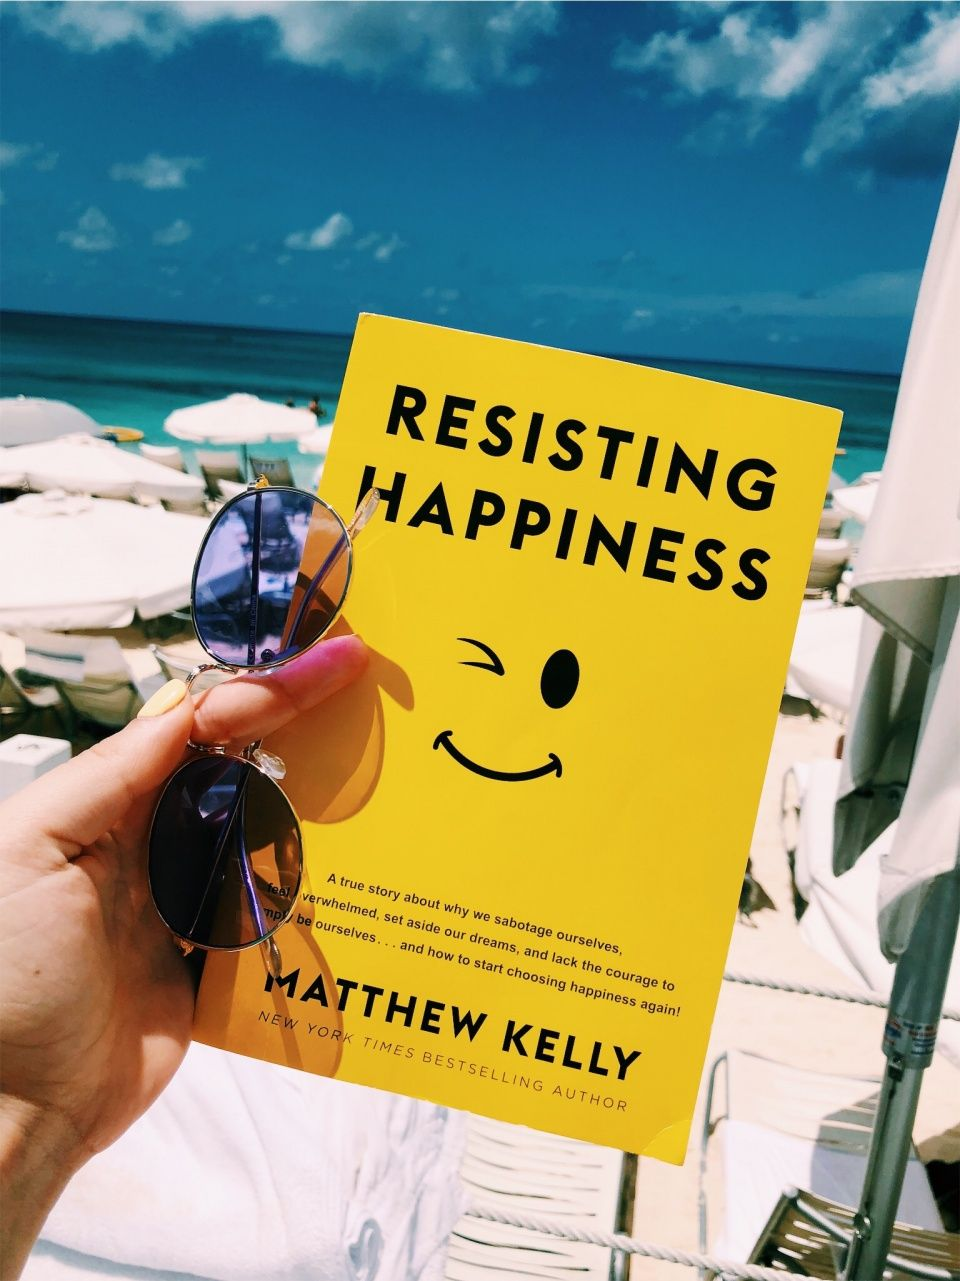 Book Resisting happiness